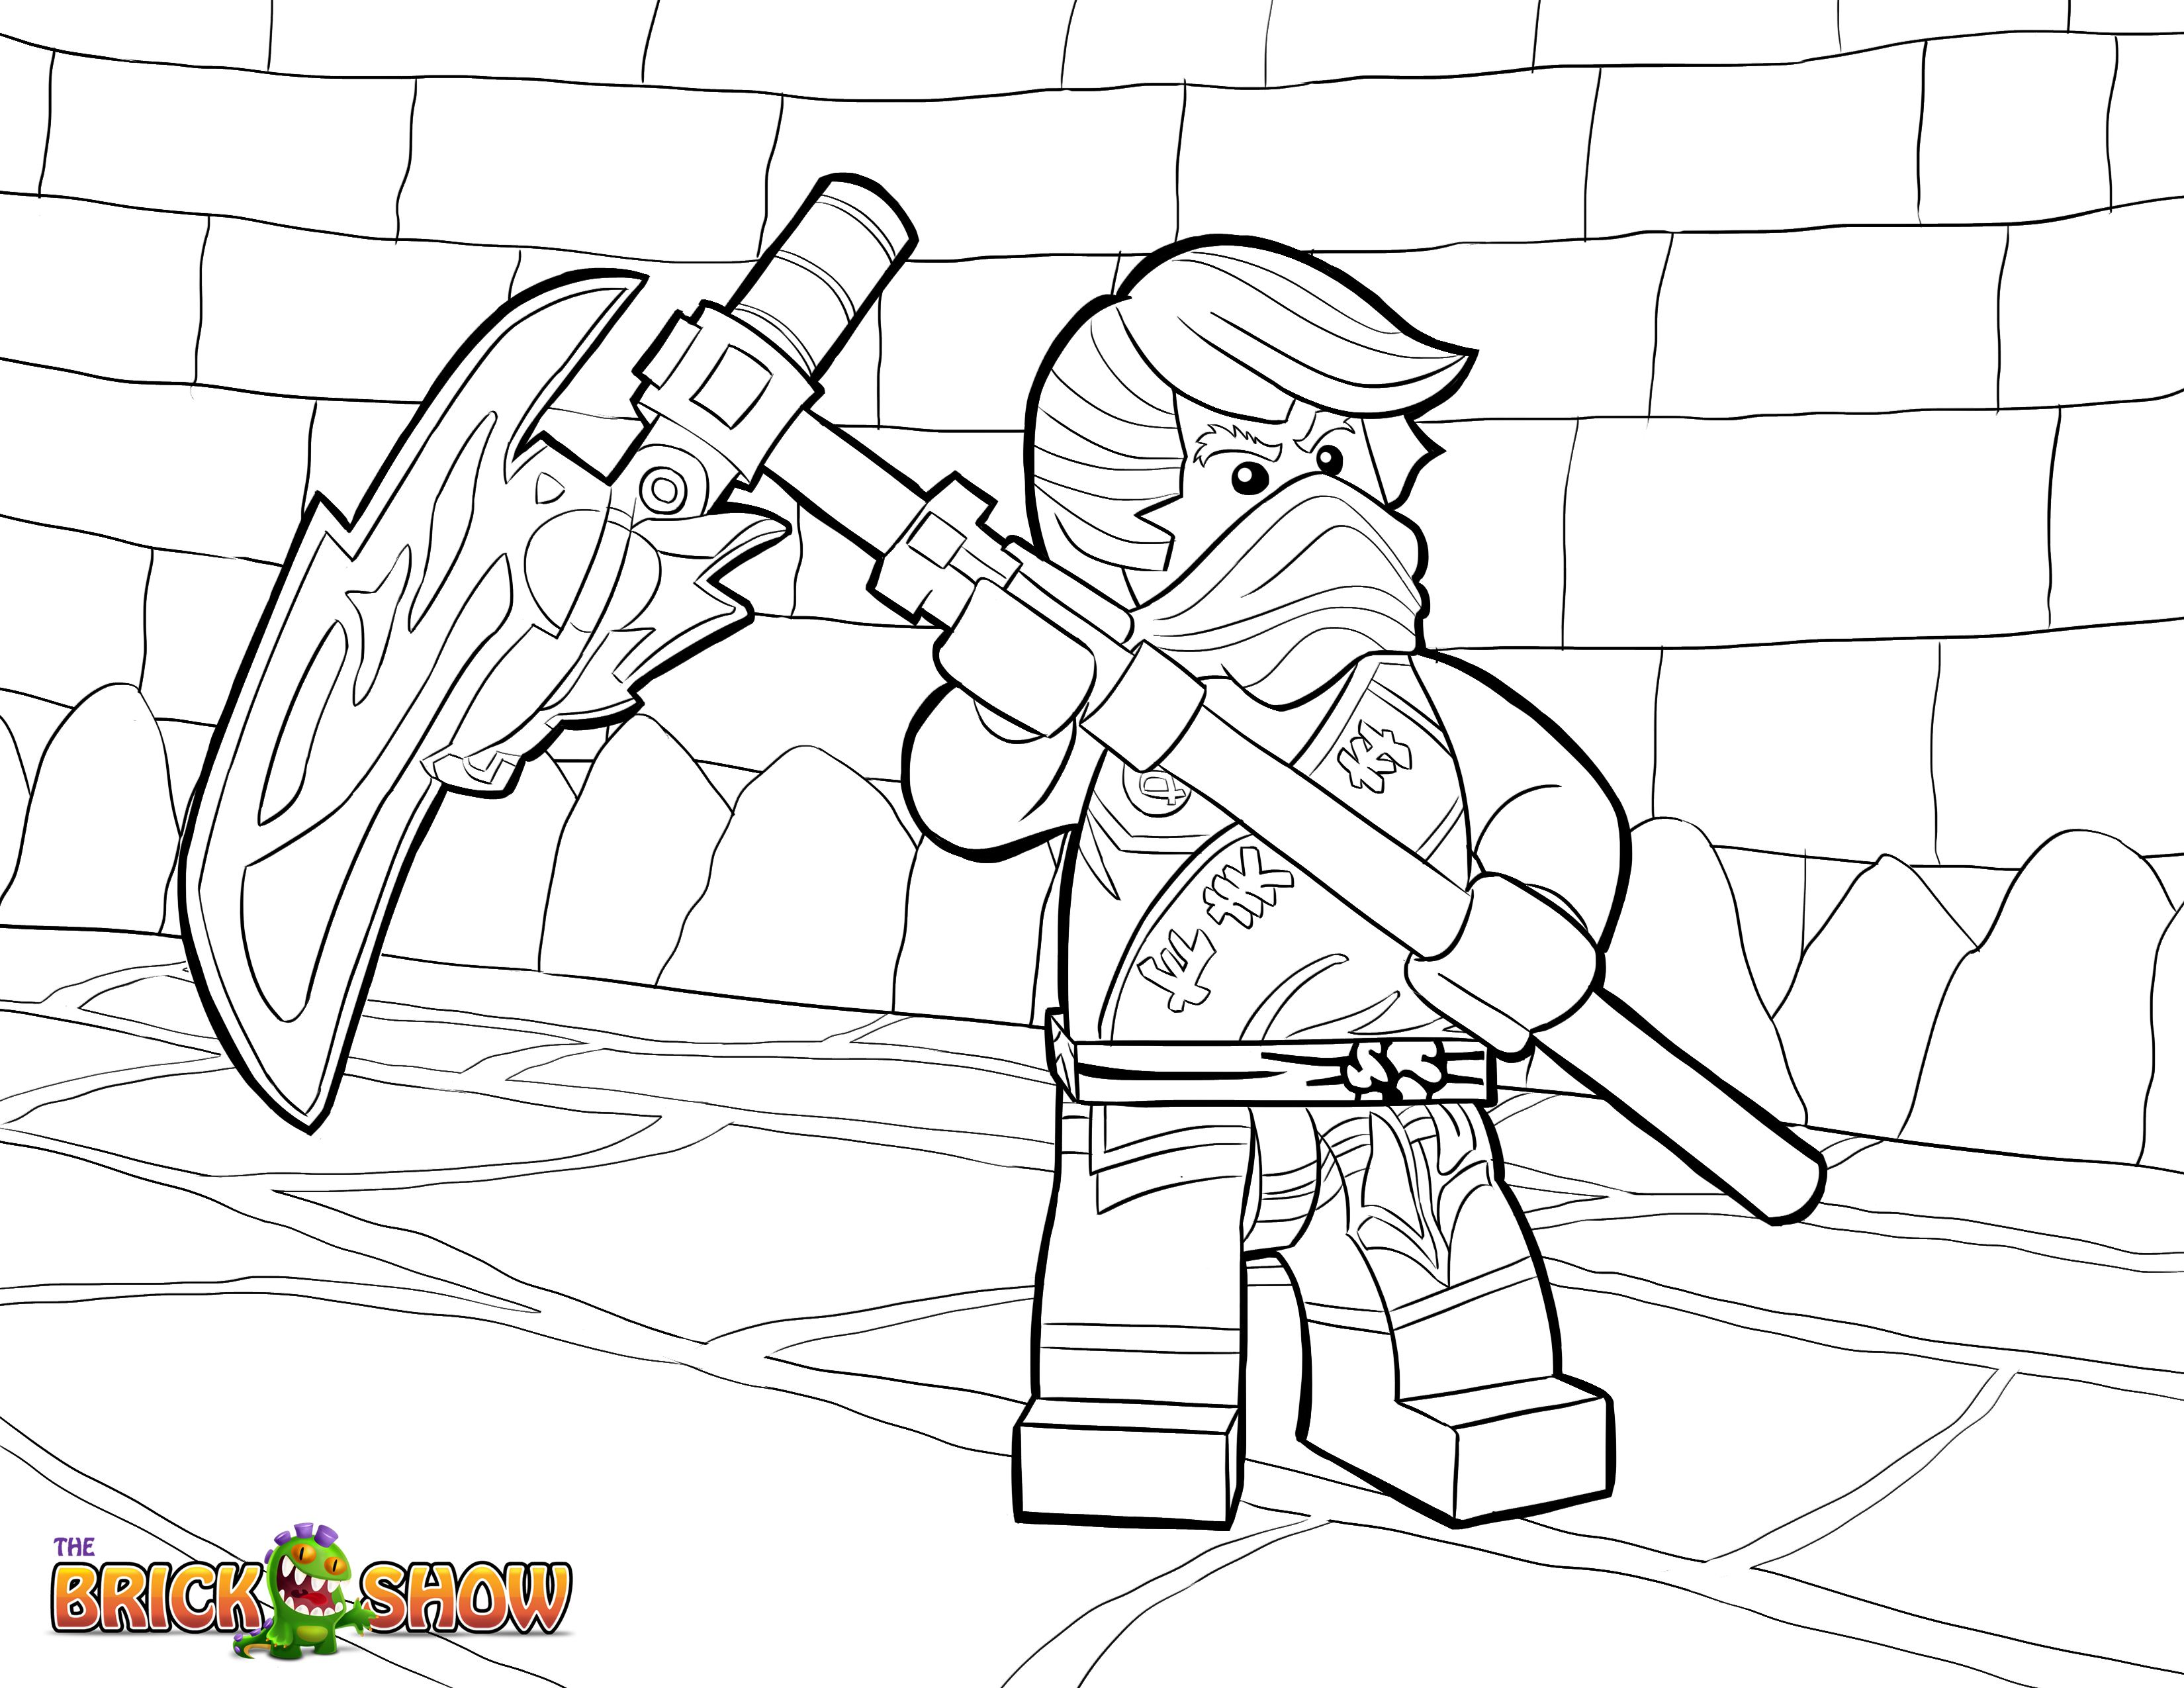 Ausmalbilder Lego Ninjago Lloyd : Ninjago Drawing Games At Getdrawings Com Free For Personal Use